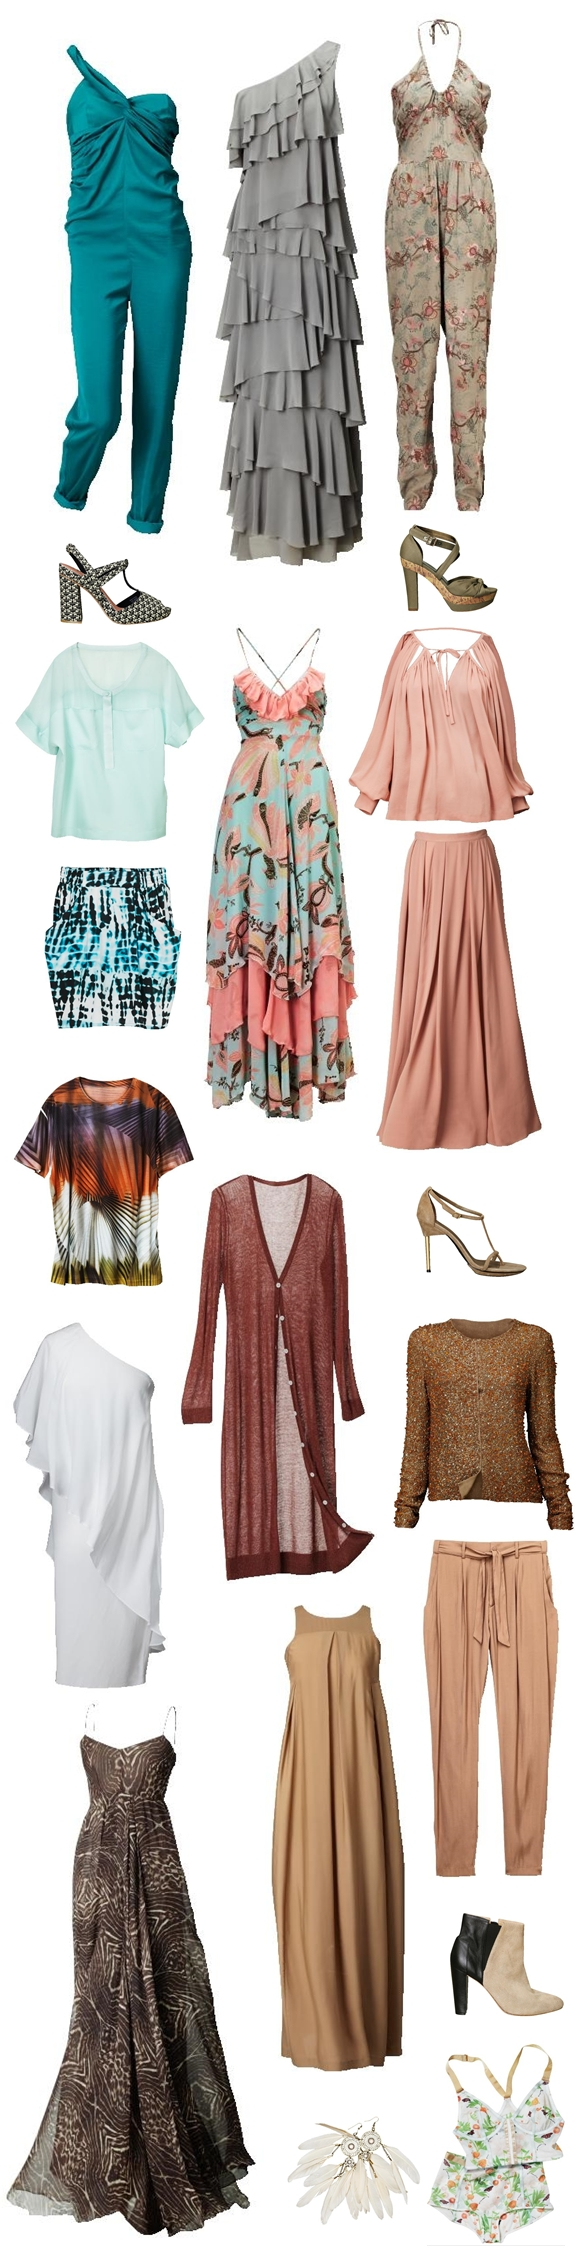 glamour collection H&M, glamour kollektion H&M, nyt hos H&M, new at H&M